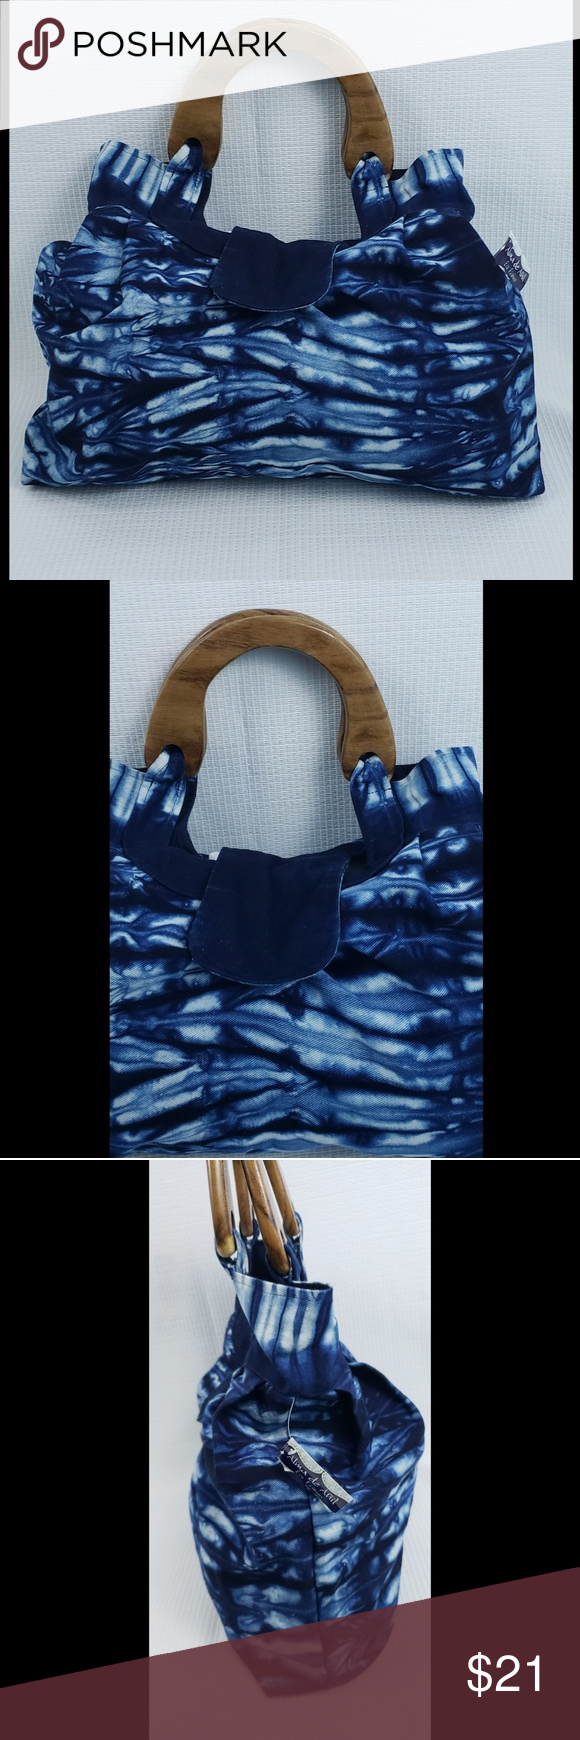 Alma de Anil Wooden Handle Tie & Dye Tote Bag 100% Cotton,  Made in El Salvador,  Tie & Dye, wooden Handles,  Has inside pockets; 2, Eco fashion... Measurements are approximate; - Length;  19 inches  - Height; 13.5 inches  - Strap drop; 9 inches Alma de Anil Bags Totes #woodentotebag